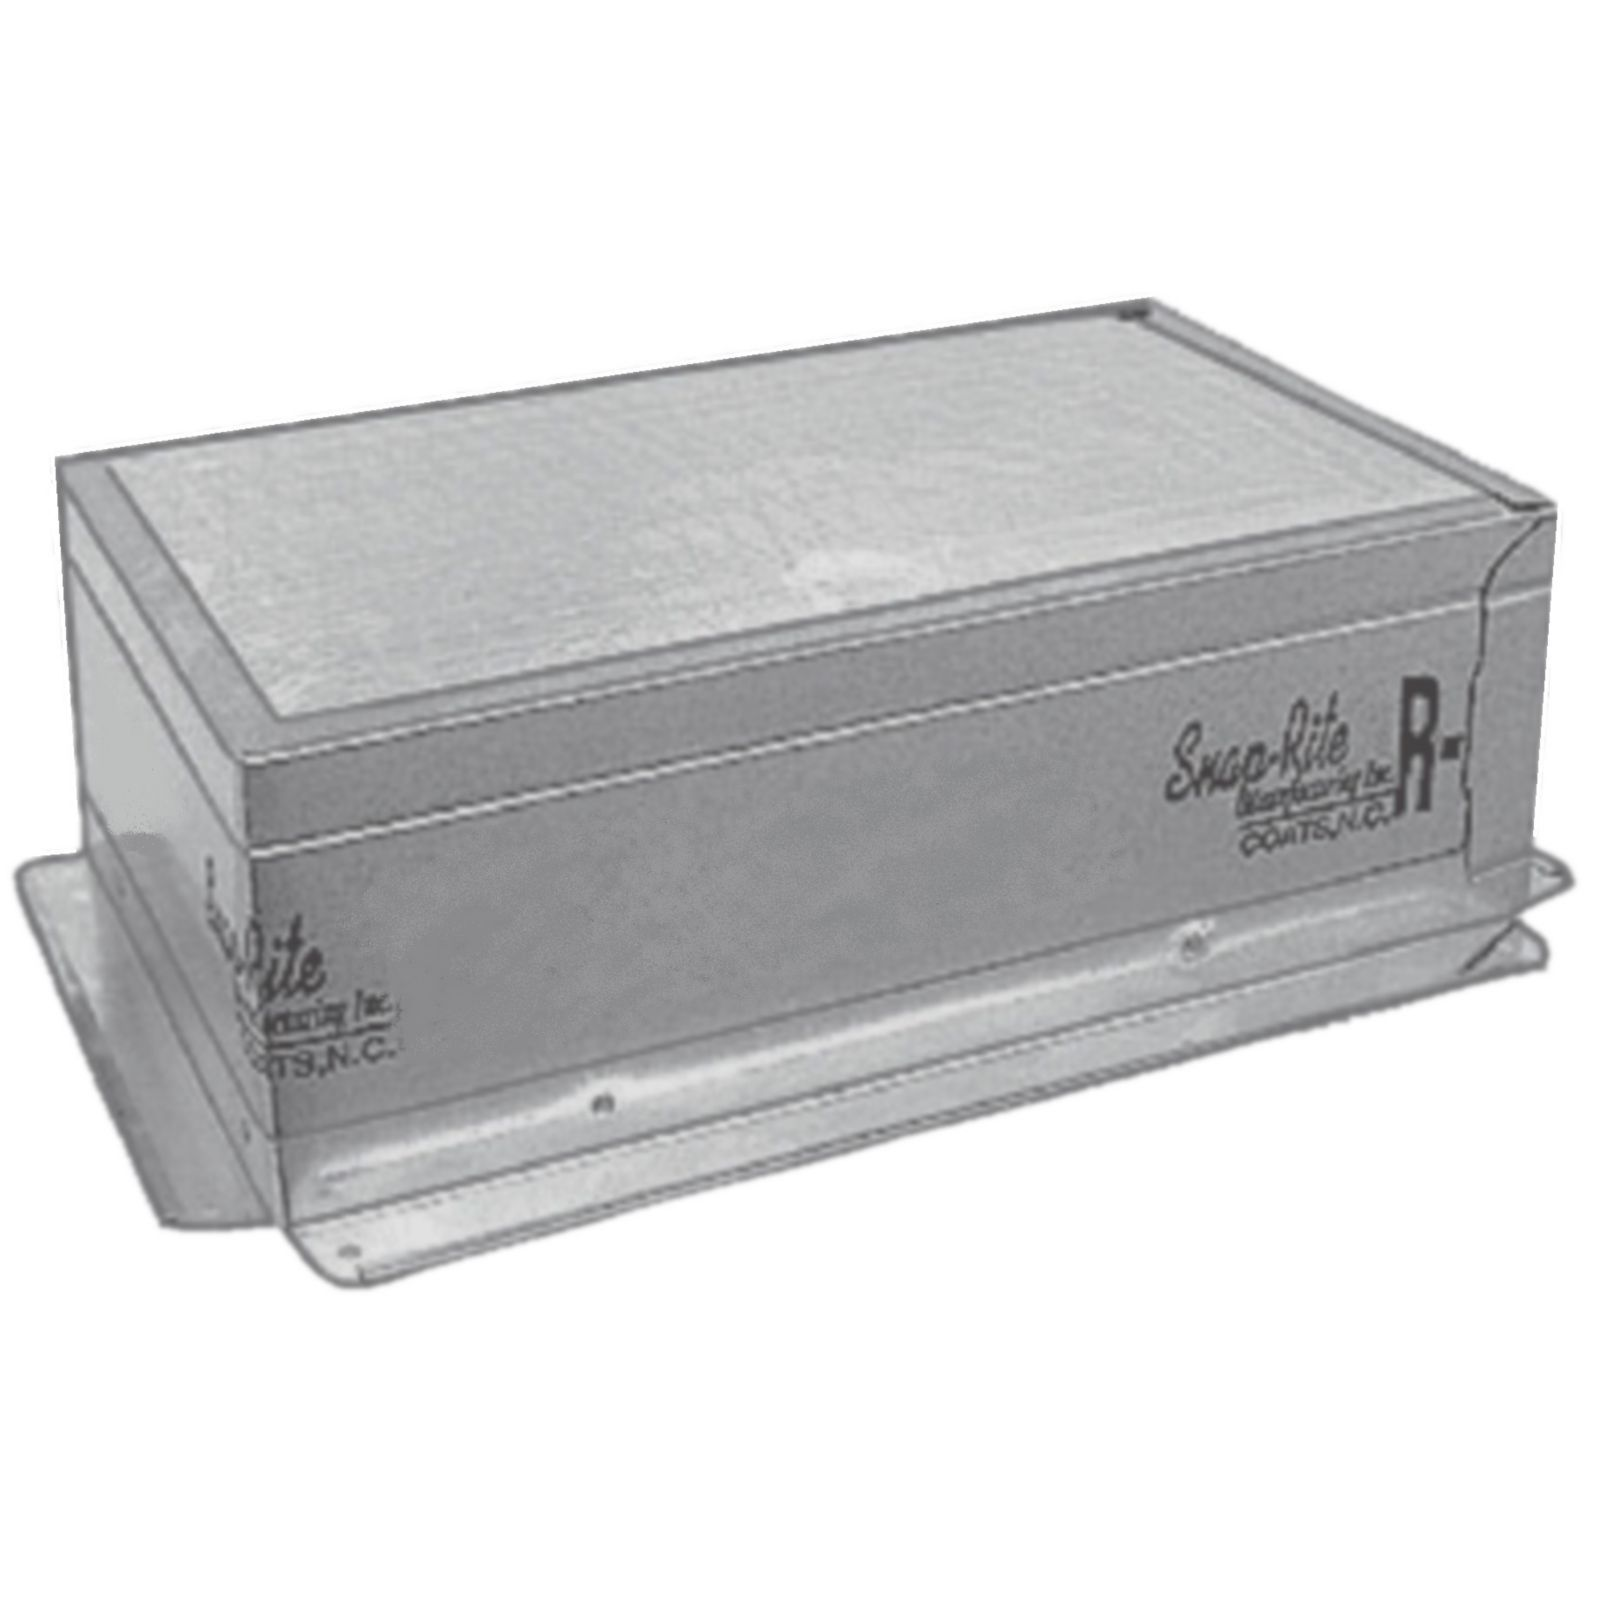 "Snap-Rite 16.5X16.5-3800F - Foil Top Insulated Register Box With Flange, 16.5"" x 16.5"" - R6"